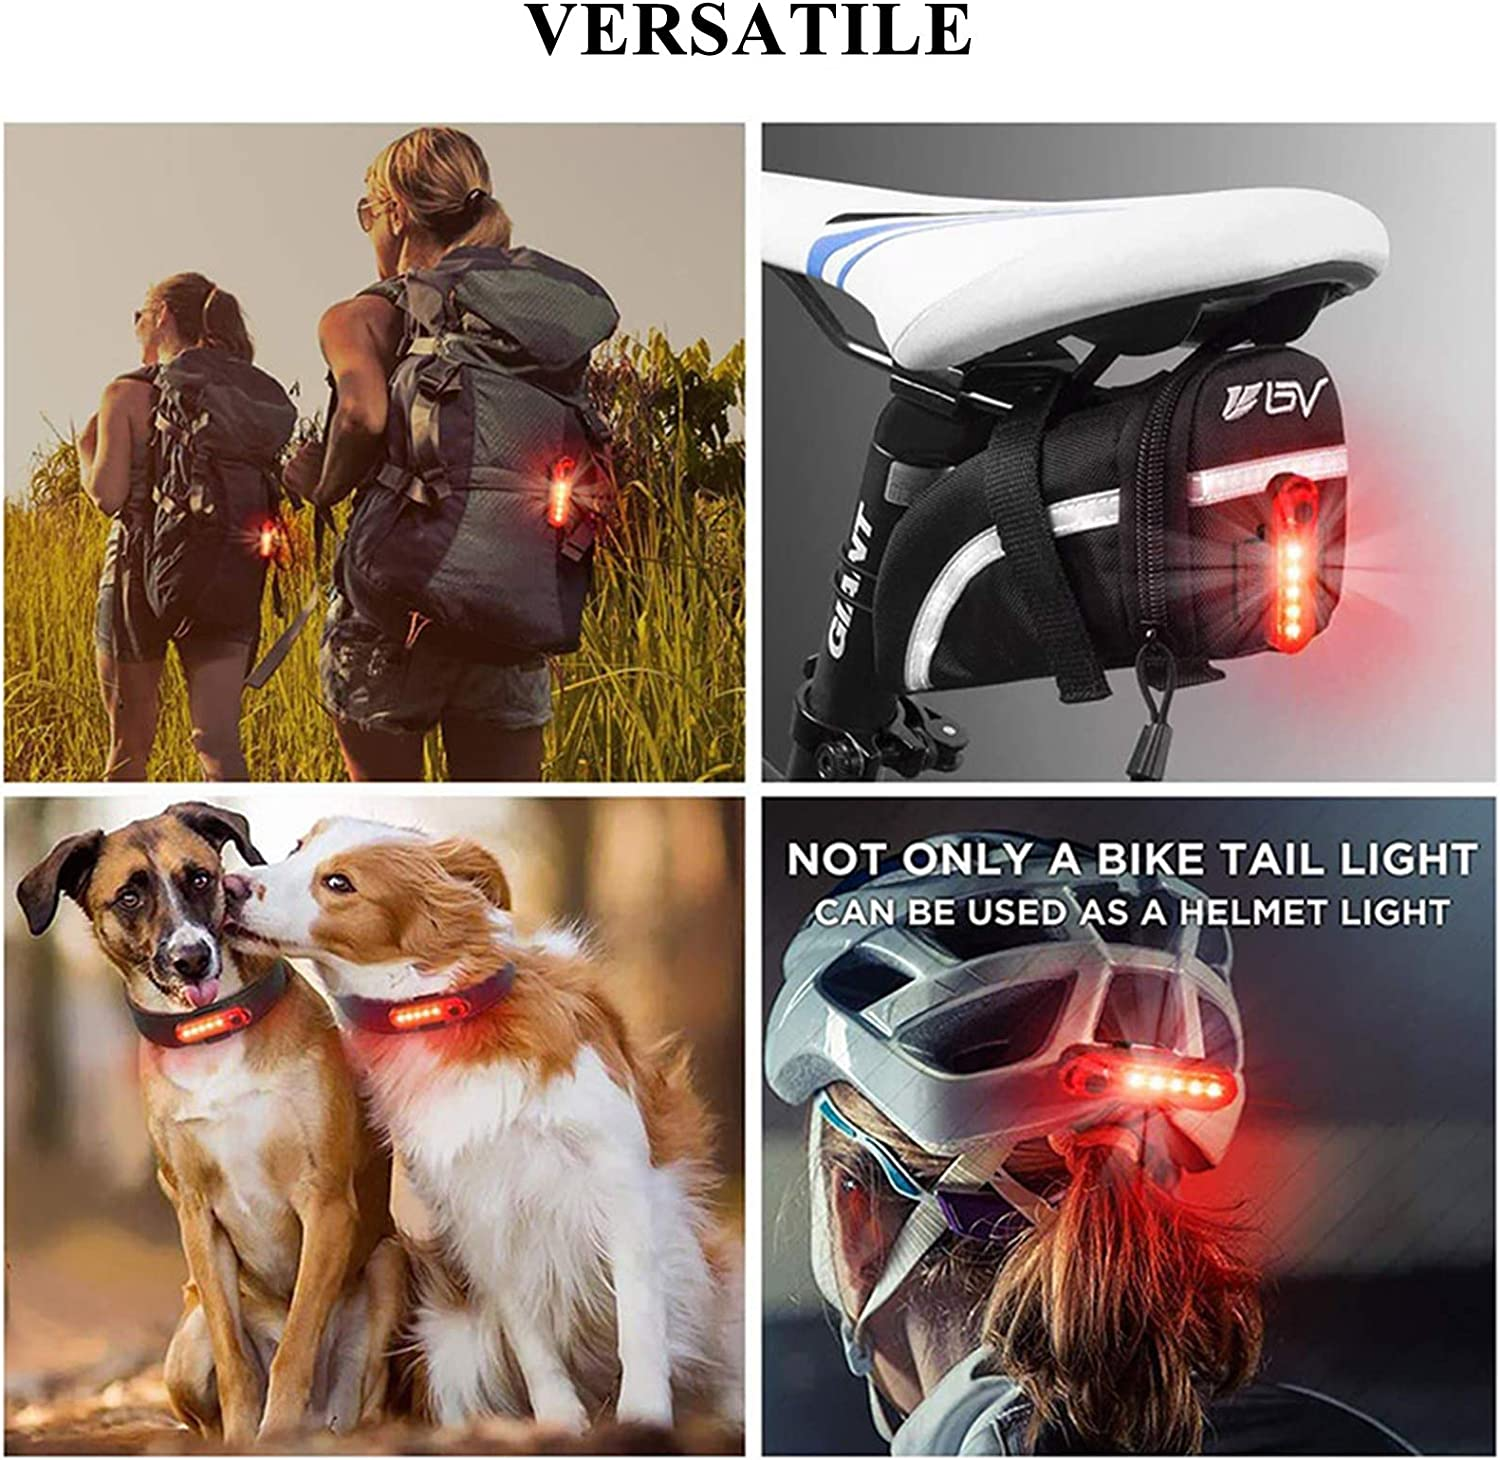 Red /& White Easy to Install Waterproof Cycling Safety Flashlight USB Rechargeable Bicycle Rear Lights YDQUANI LED Bike Taillight 2 Pack 4 Light Modes